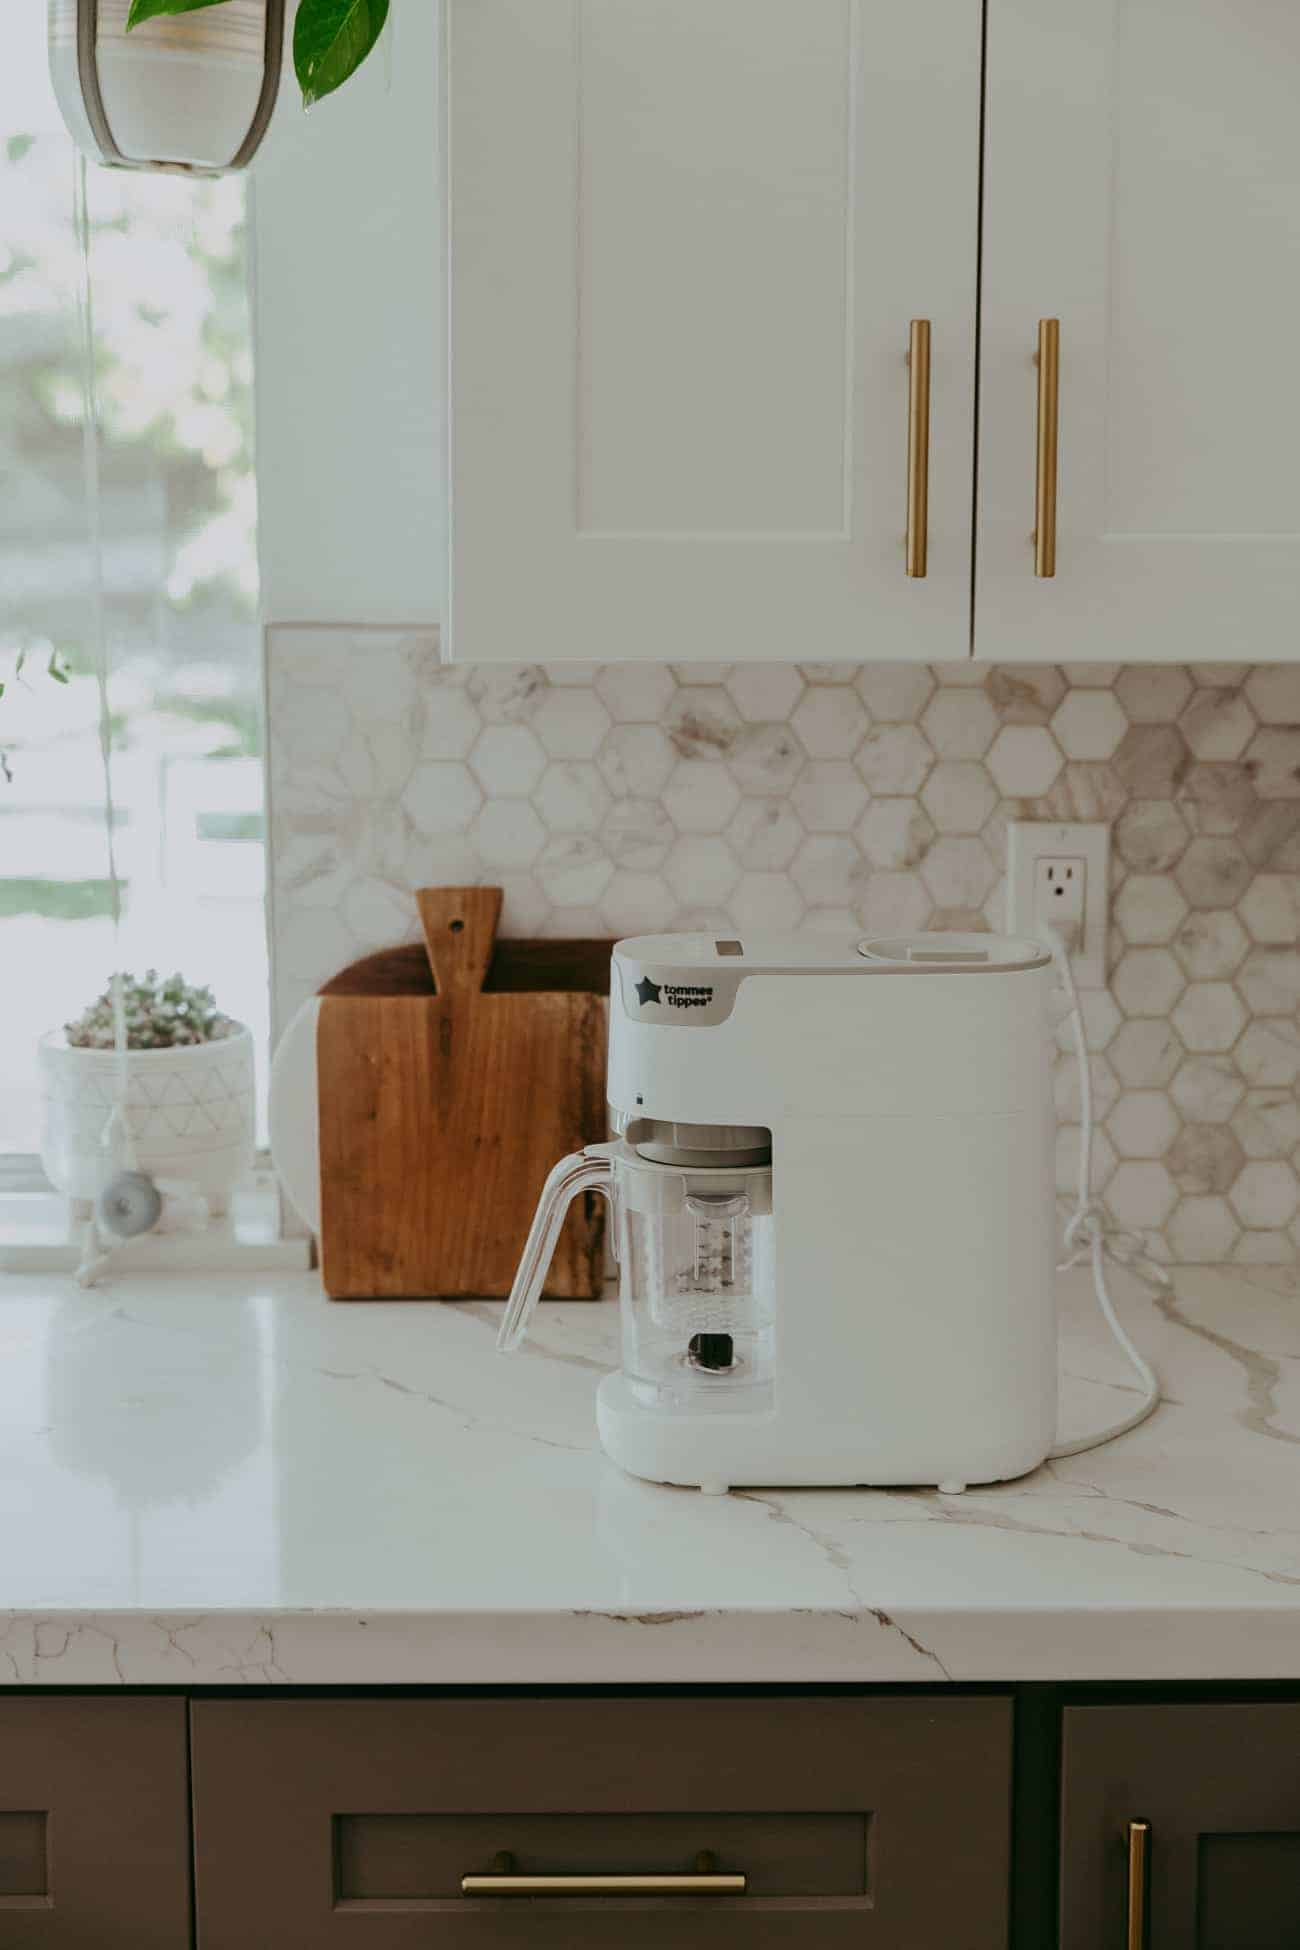 tommee tippee steamer and blender on a marble kitchen counter